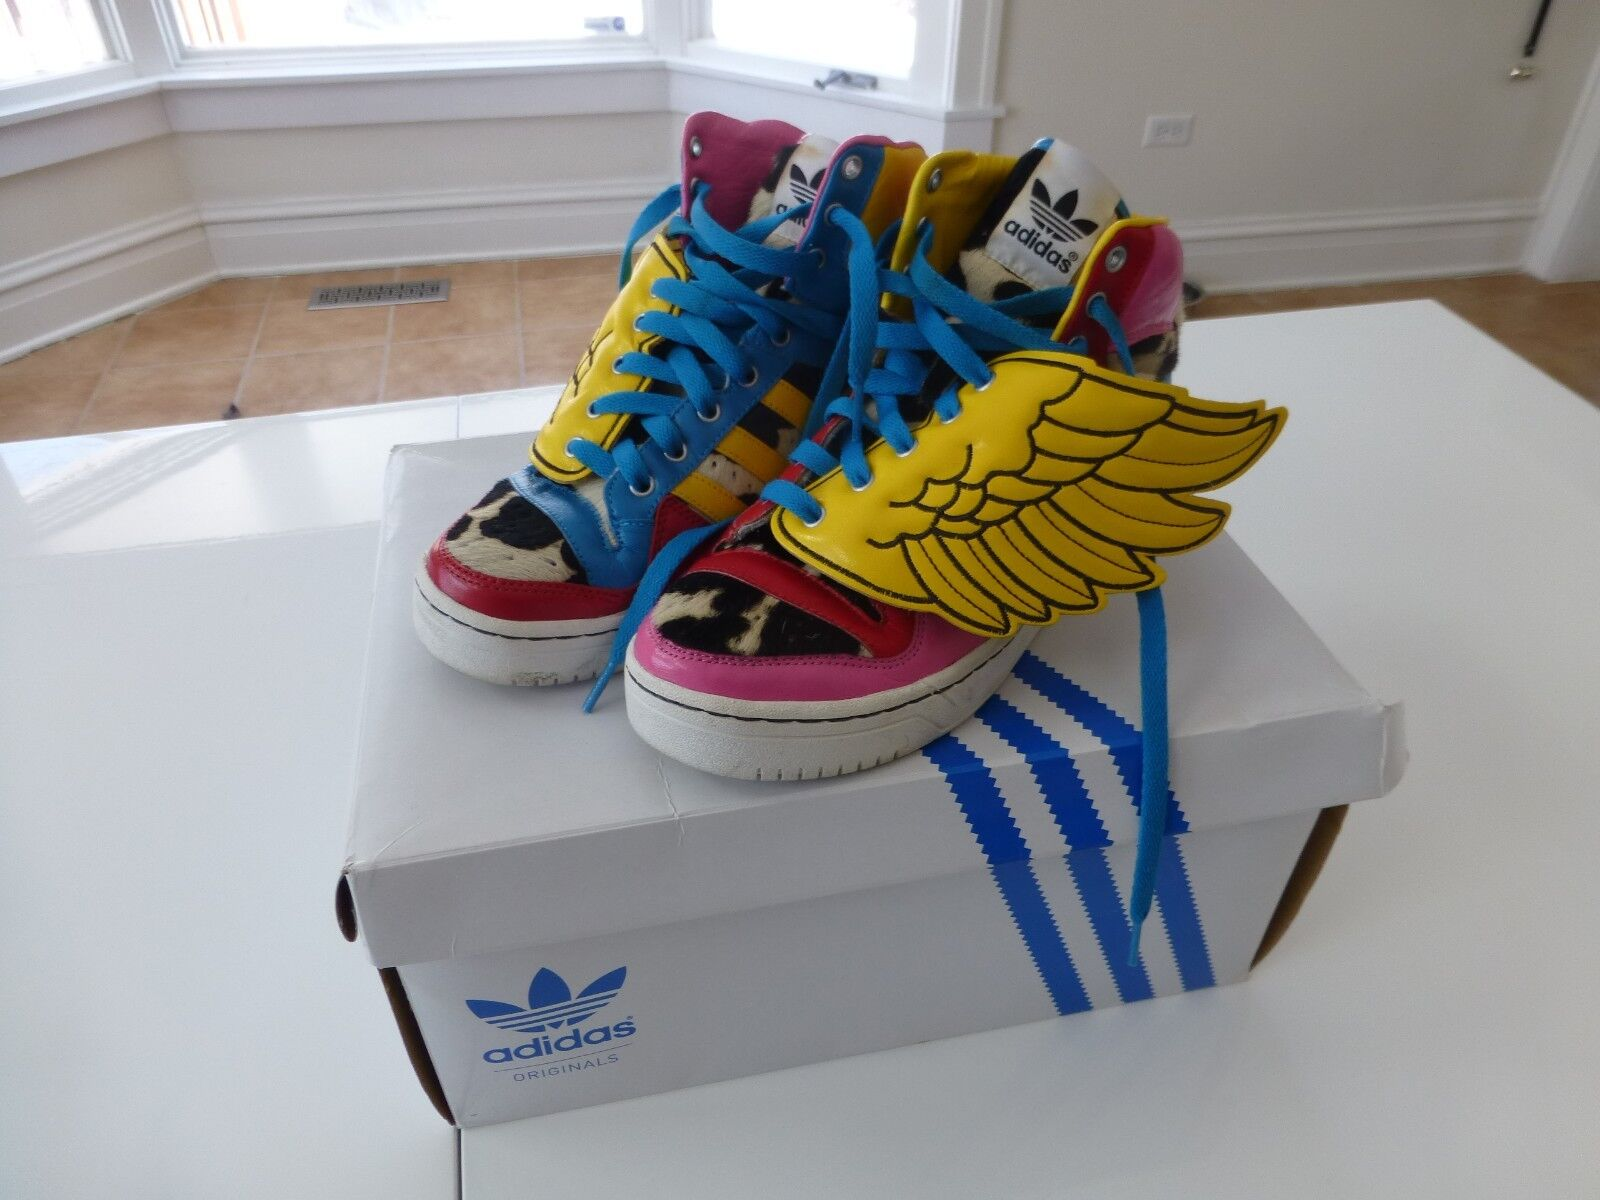 Adidas Originals x Jeremy Scott WINGS x 2NE1 JS COLLAGE WINGS Scott High-tops US male size 8 8bc8ce